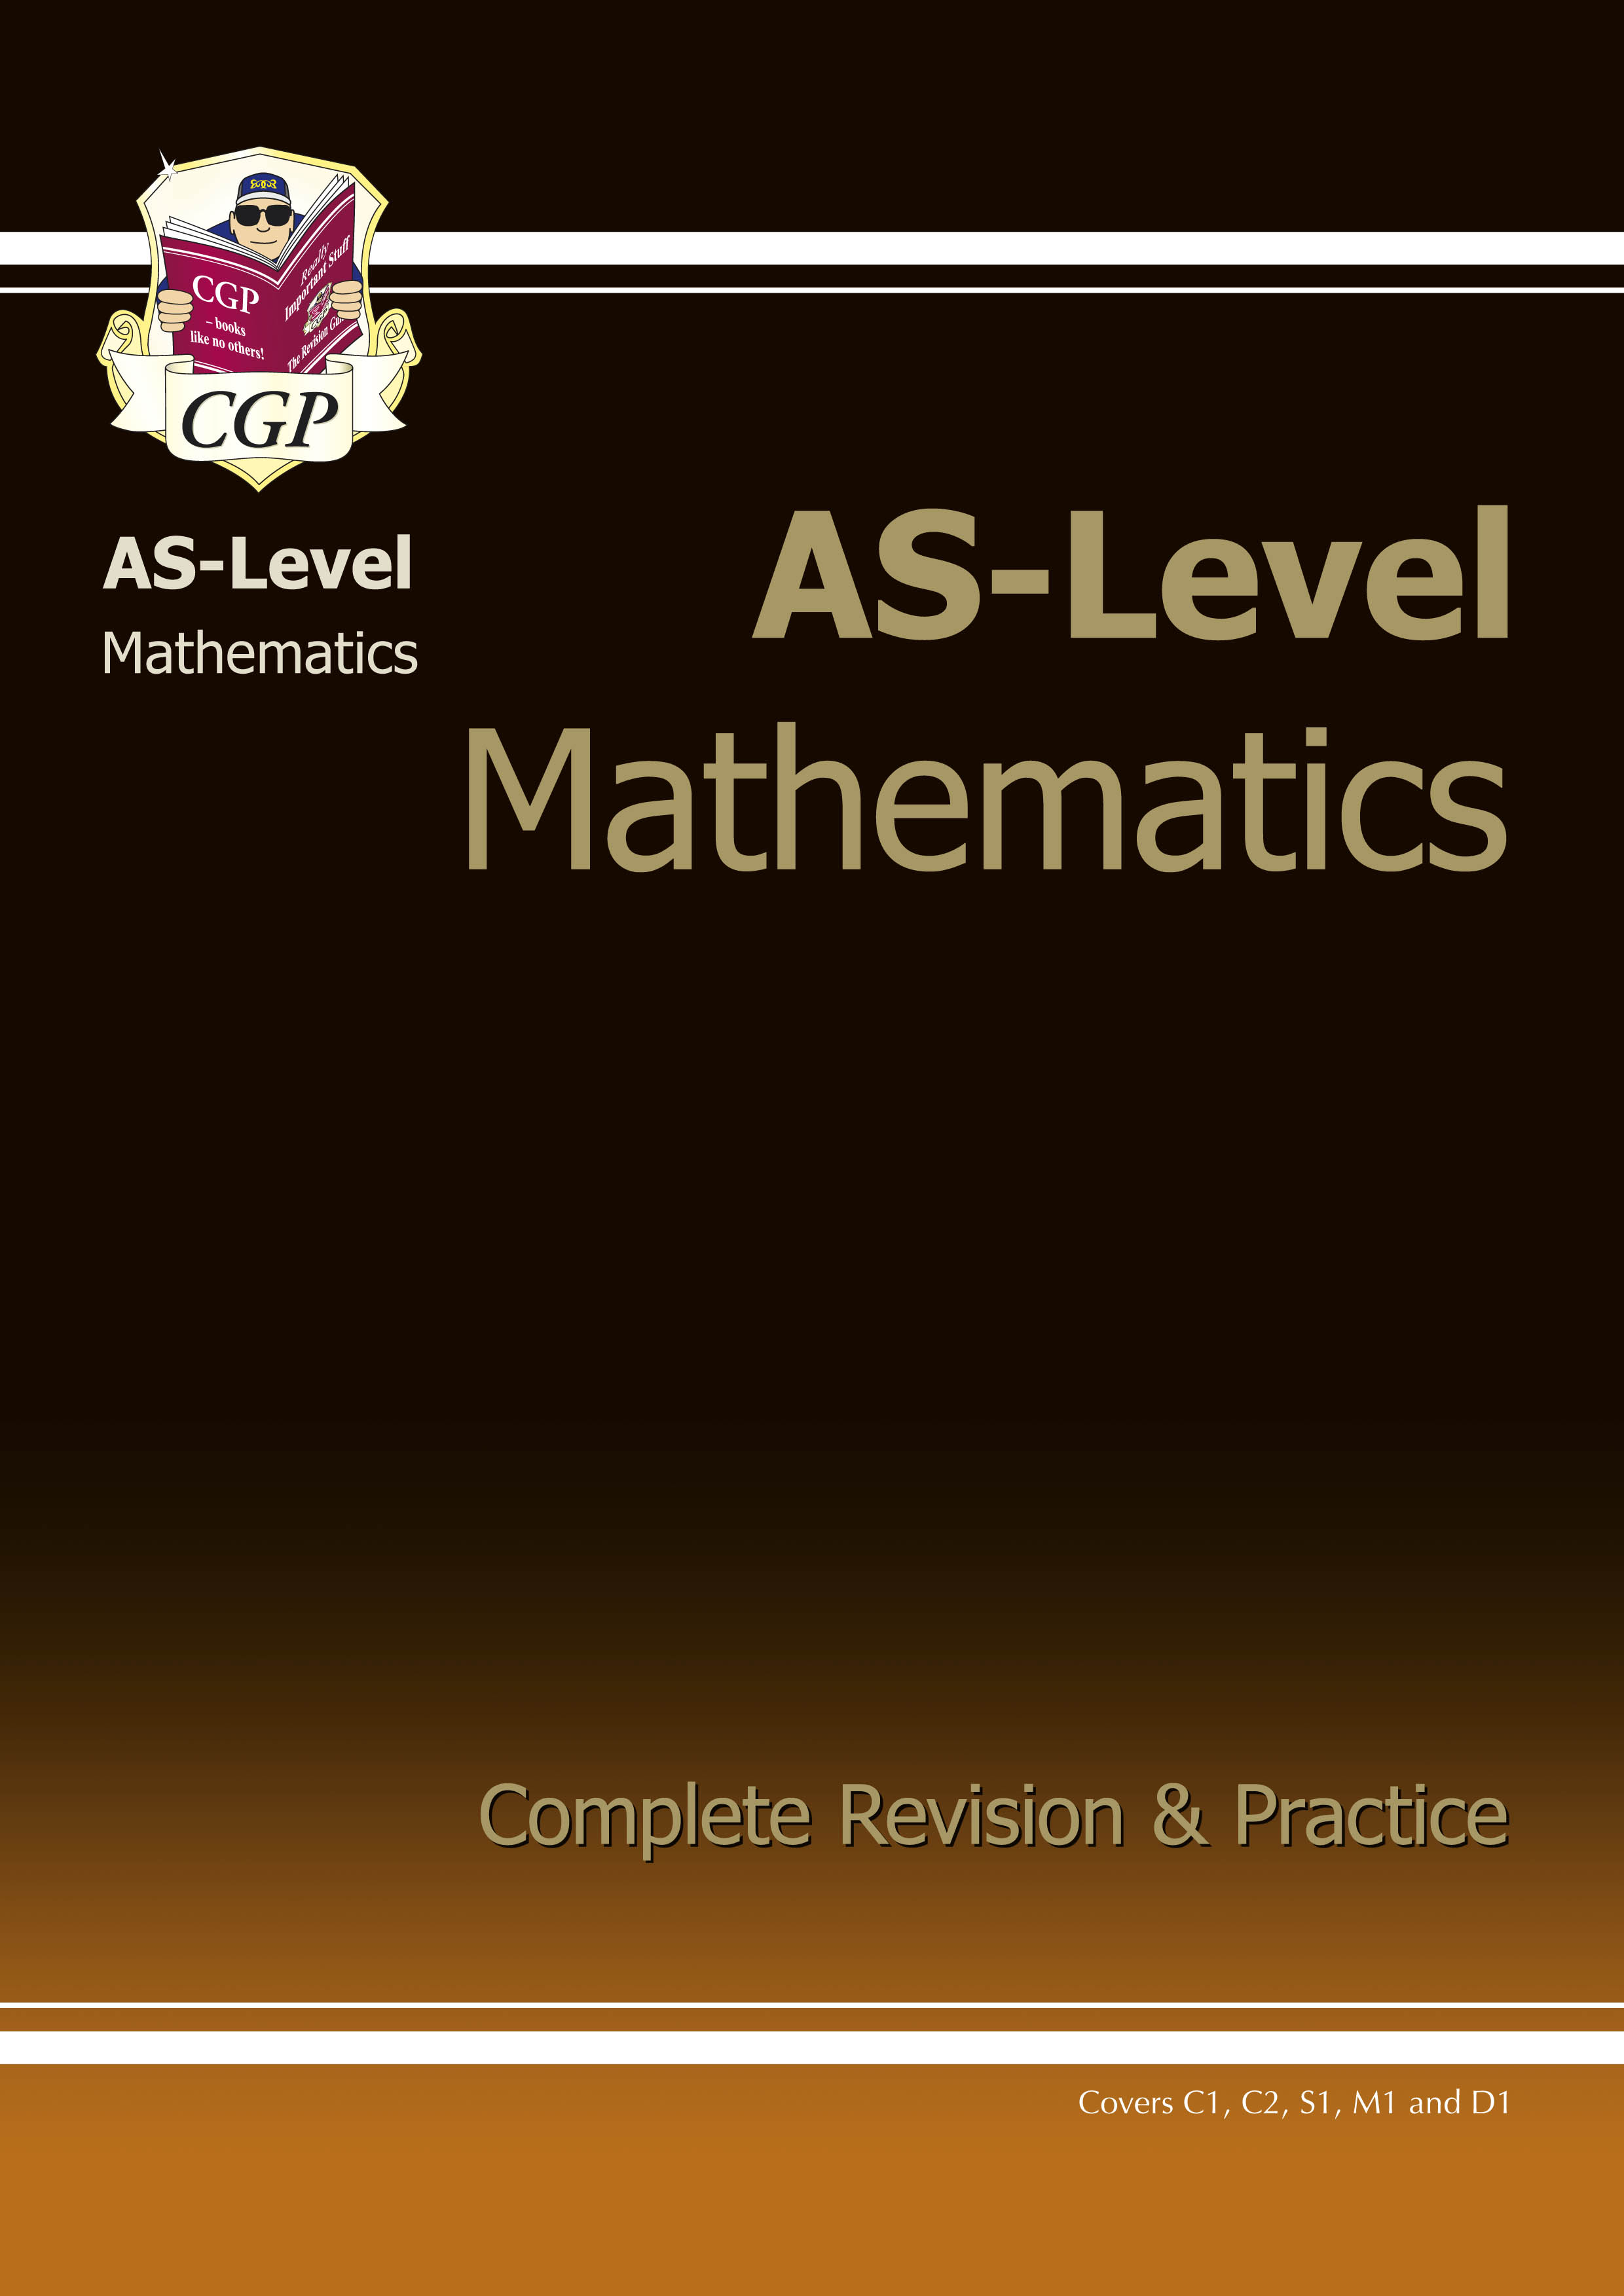 MHR53DK - AS-Level Maths Complete Revision & Practice